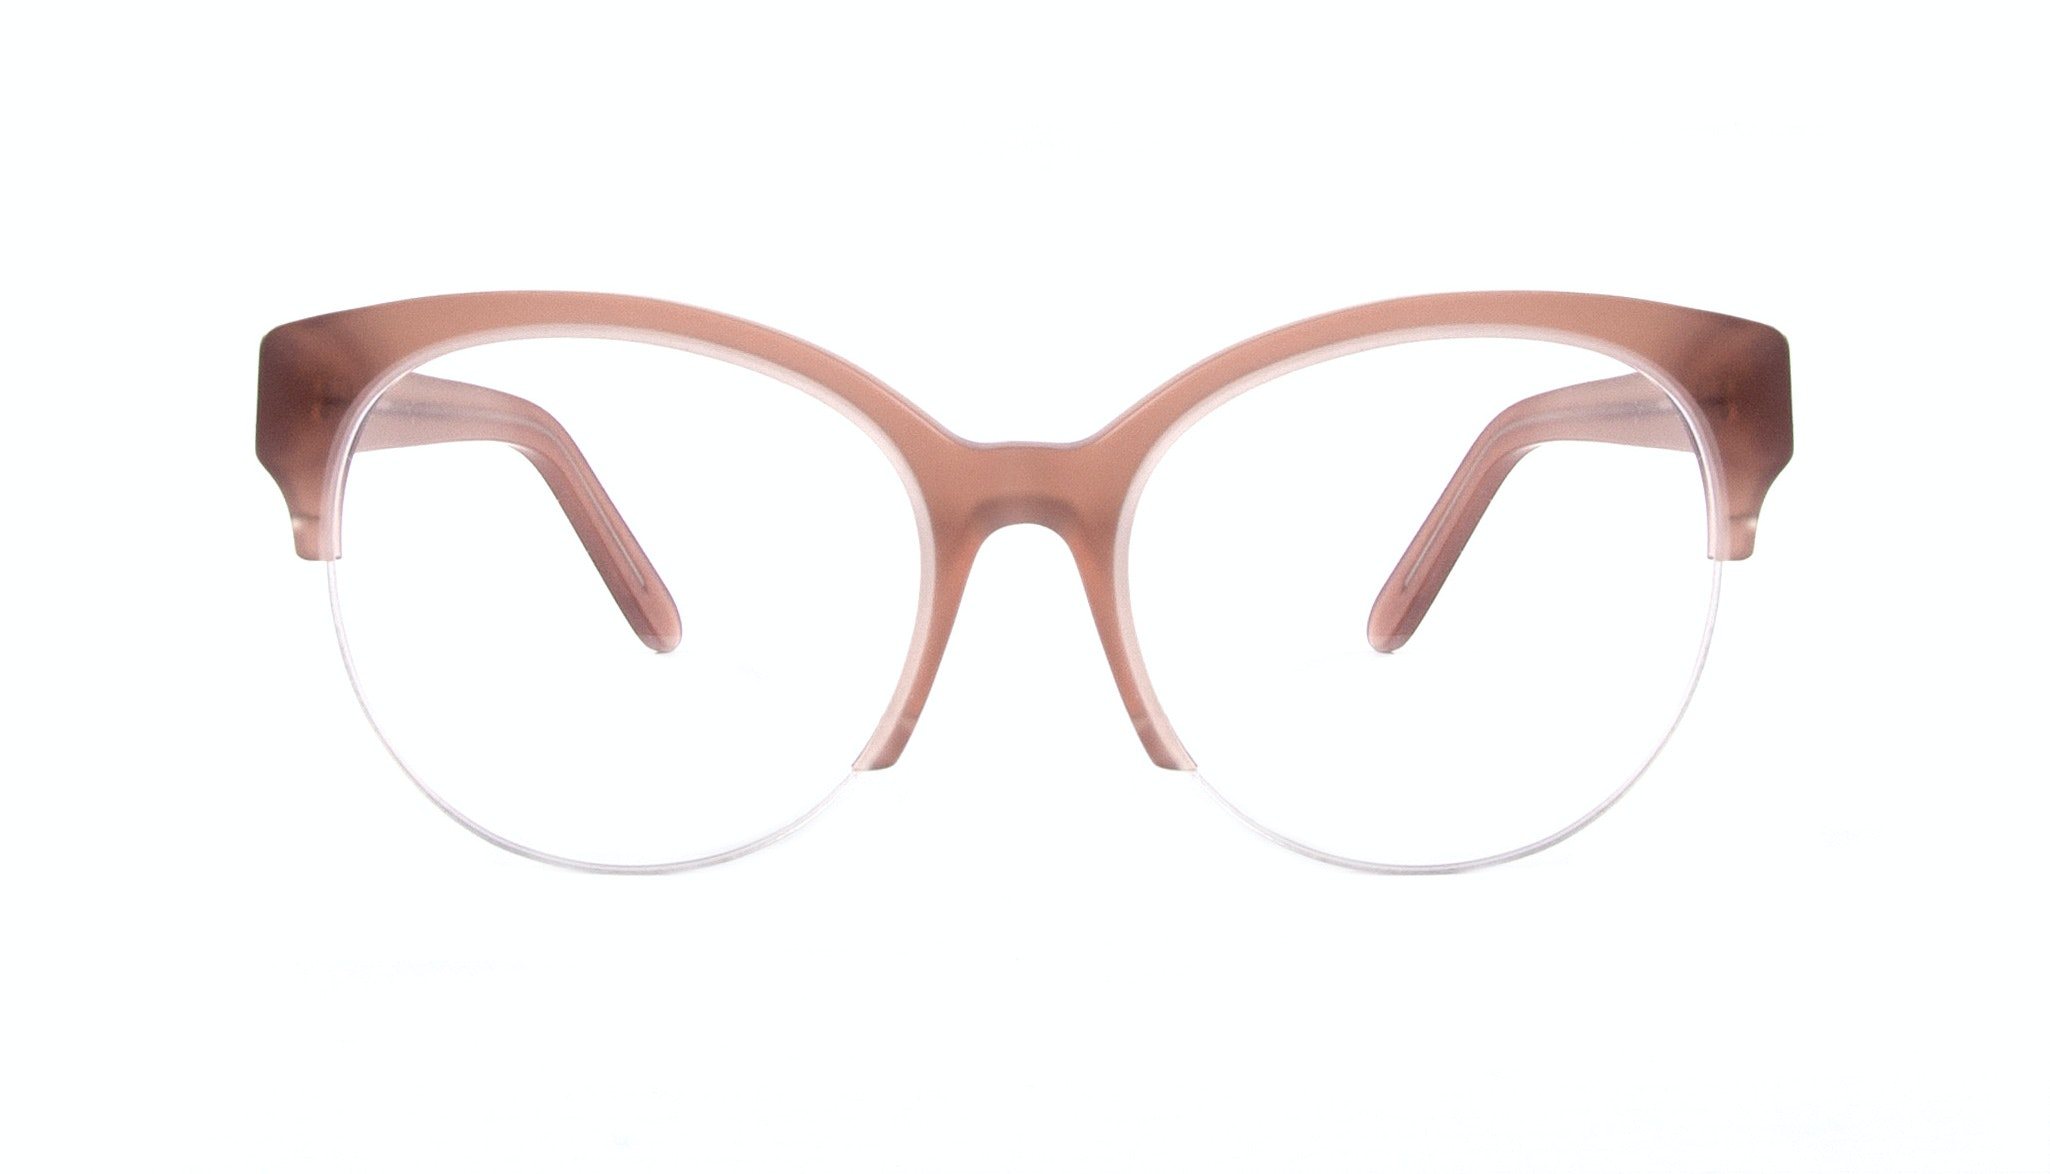 Affordable Fashion Glasses Cat Eye Round Semi-Rimless Eyeglasses Women Eclipse Light Old Rose Front